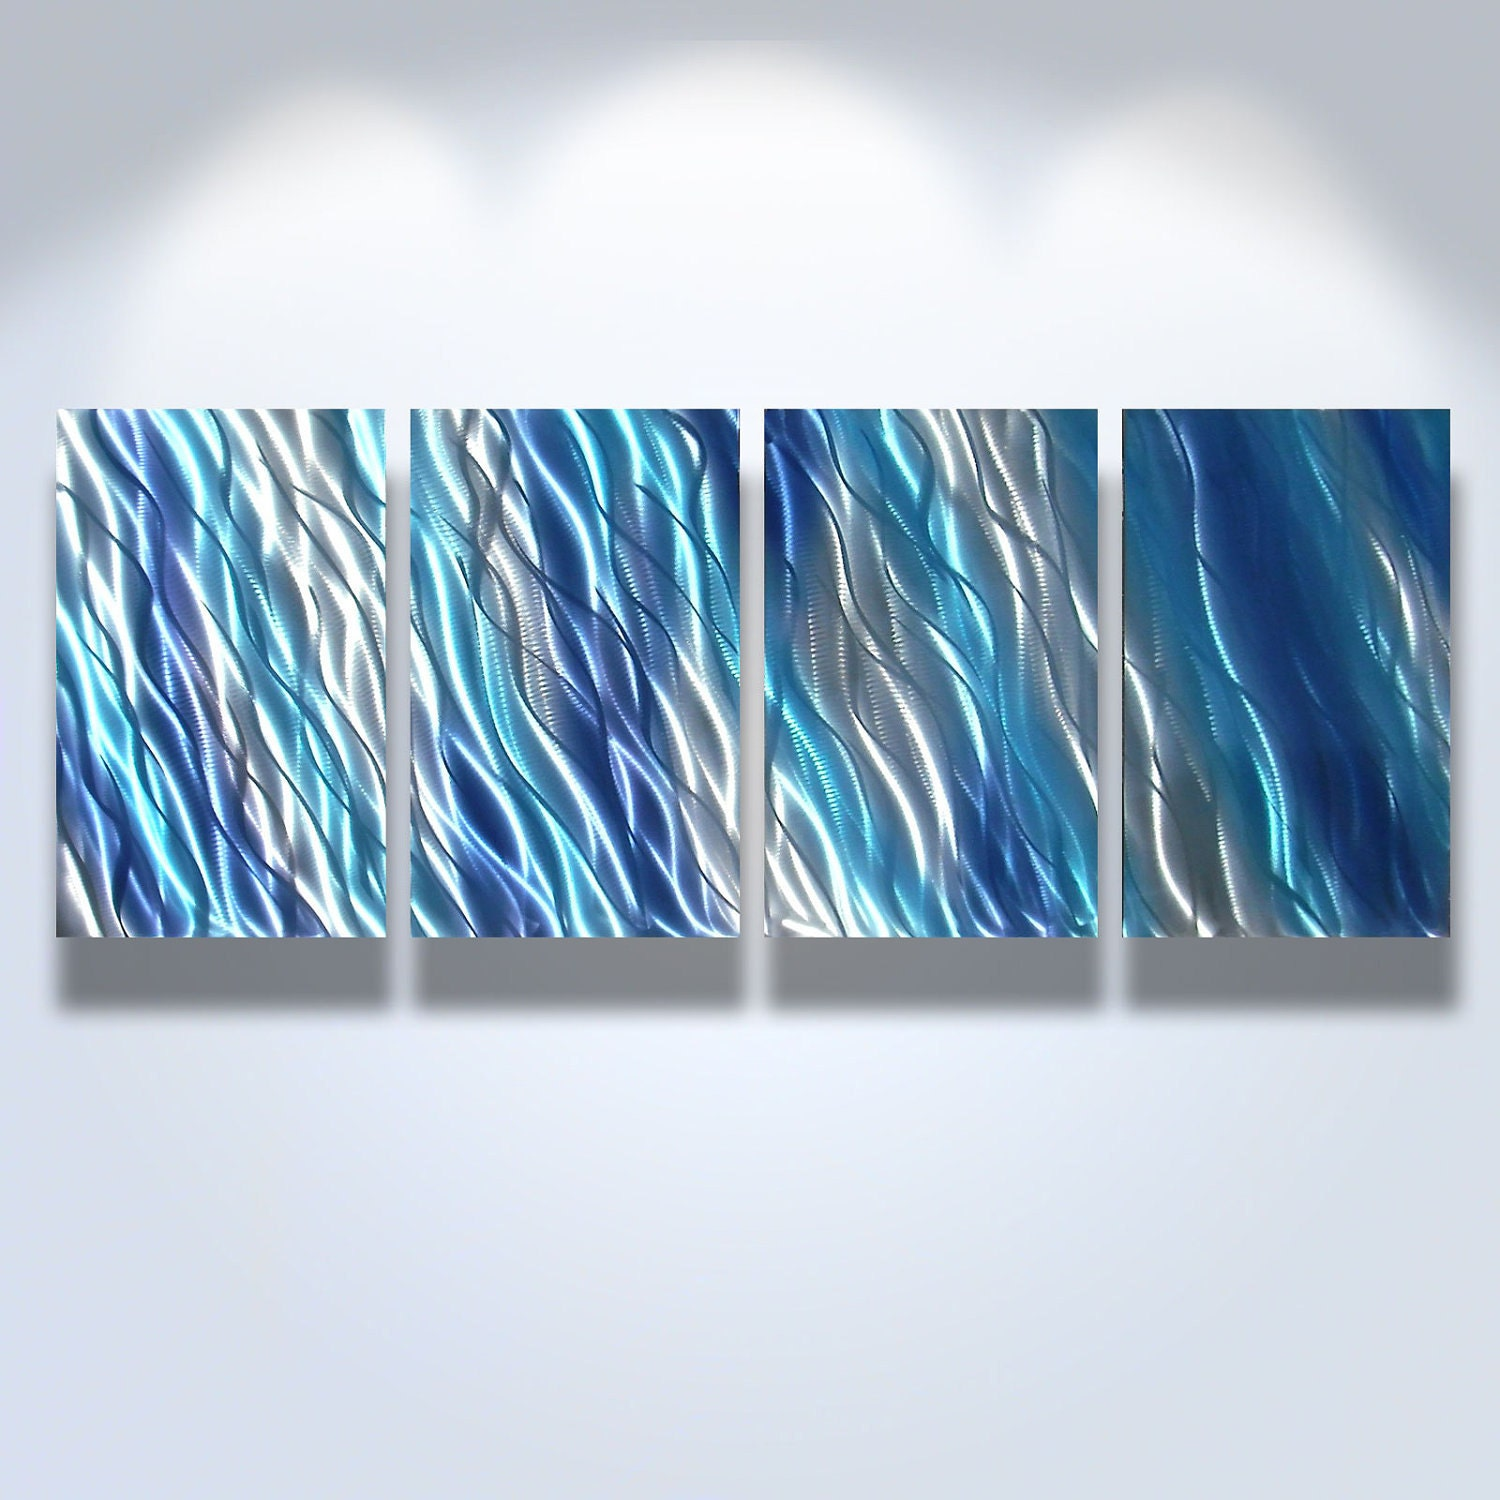 Metal Wall Art Decor Abstract Contemporary Modern Sculpture Hanging Zen Textured water - Reef Blue 2